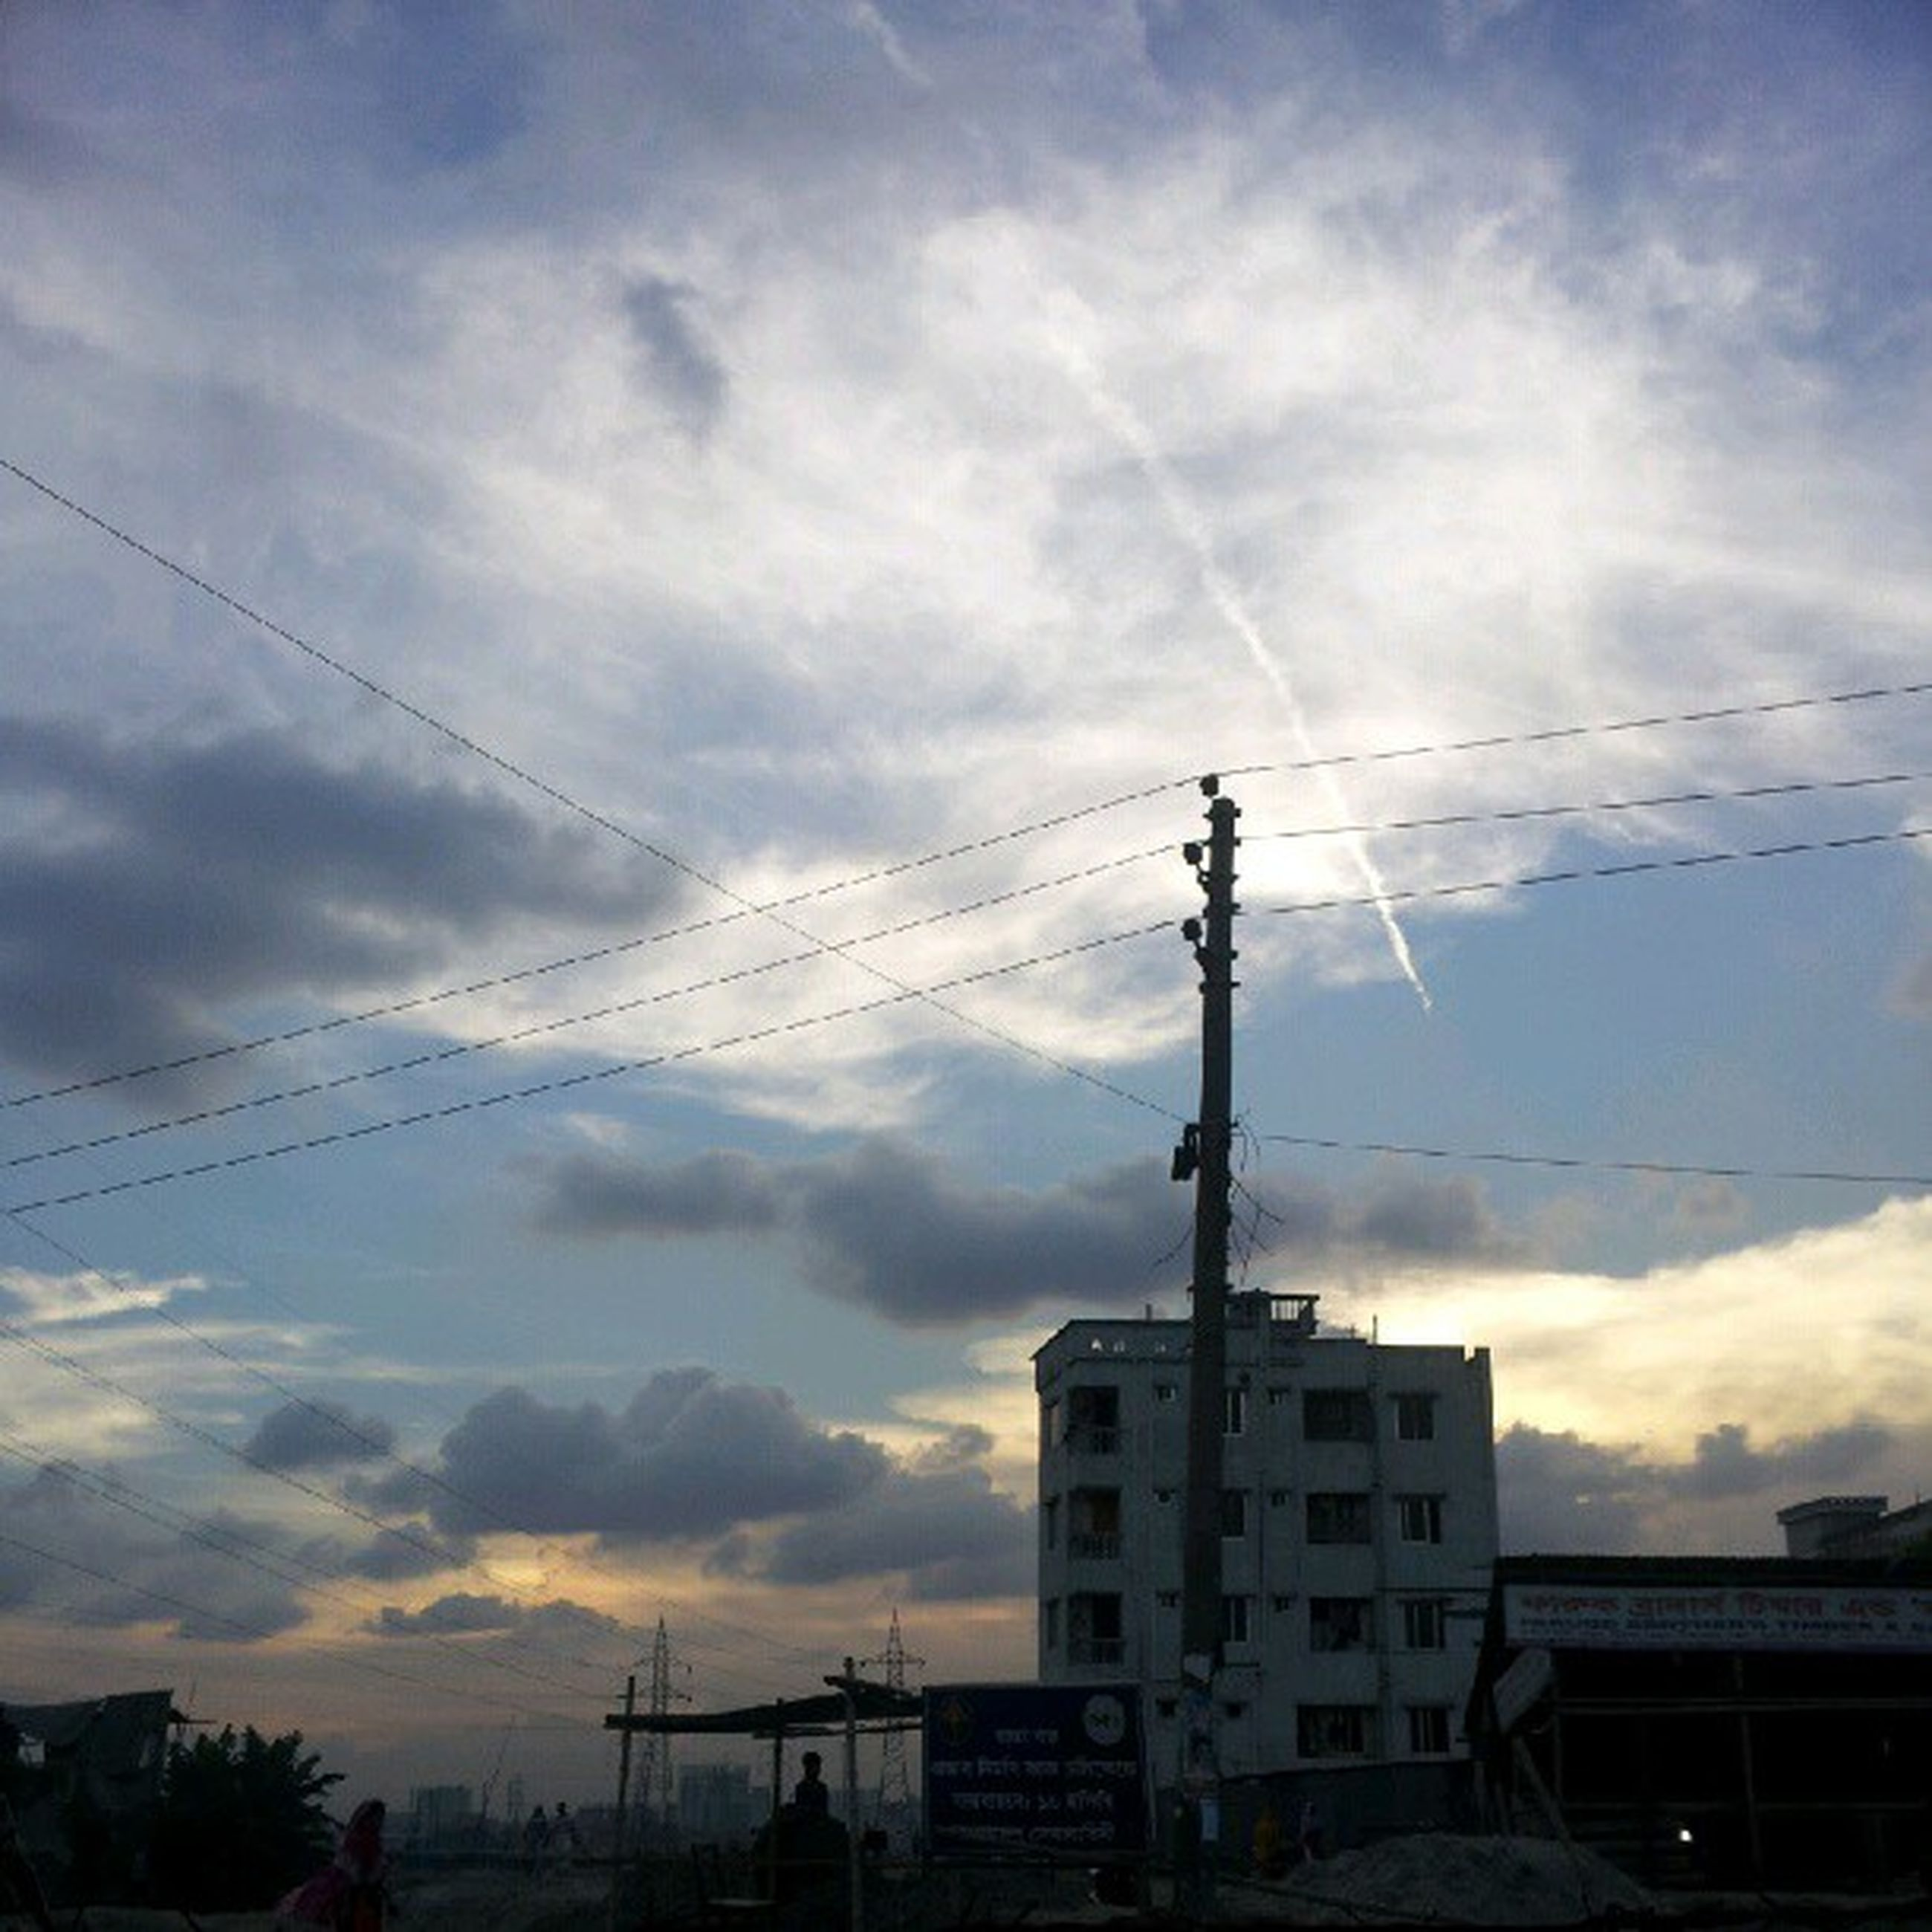 power line, electricity pylon, sky, electricity, cloud - sky, cable, power supply, connection, building exterior, cloudy, fuel and power generation, built structure, architecture, low angle view, silhouette, cloud, technology, sunset, power cable, weather